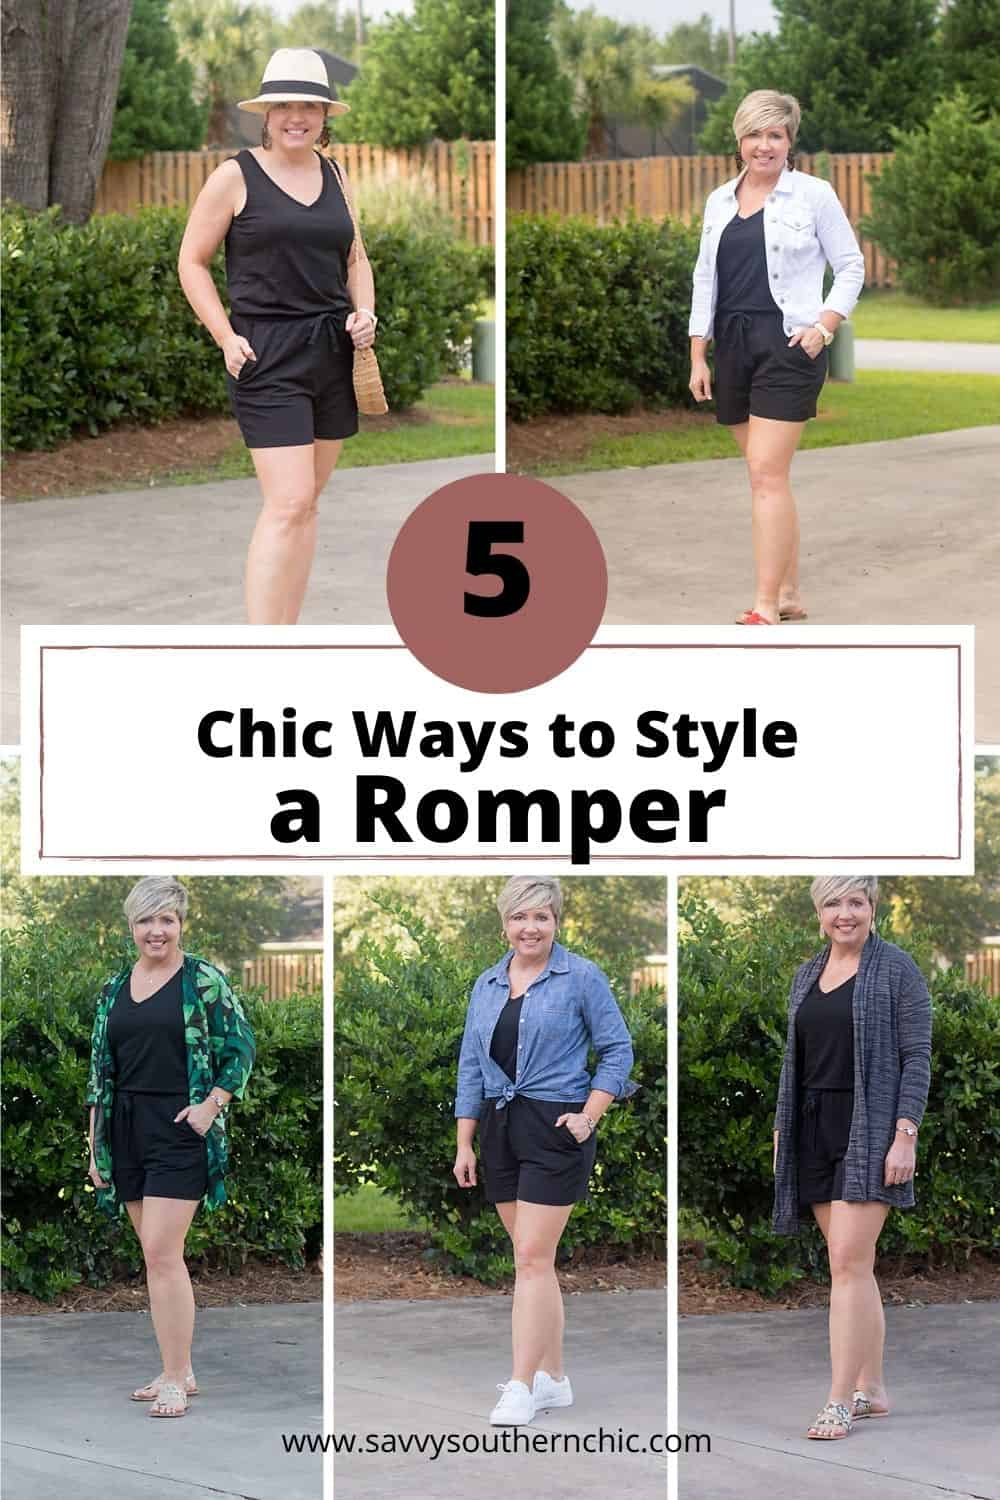 How to Style a Romper 5 Chic Ways